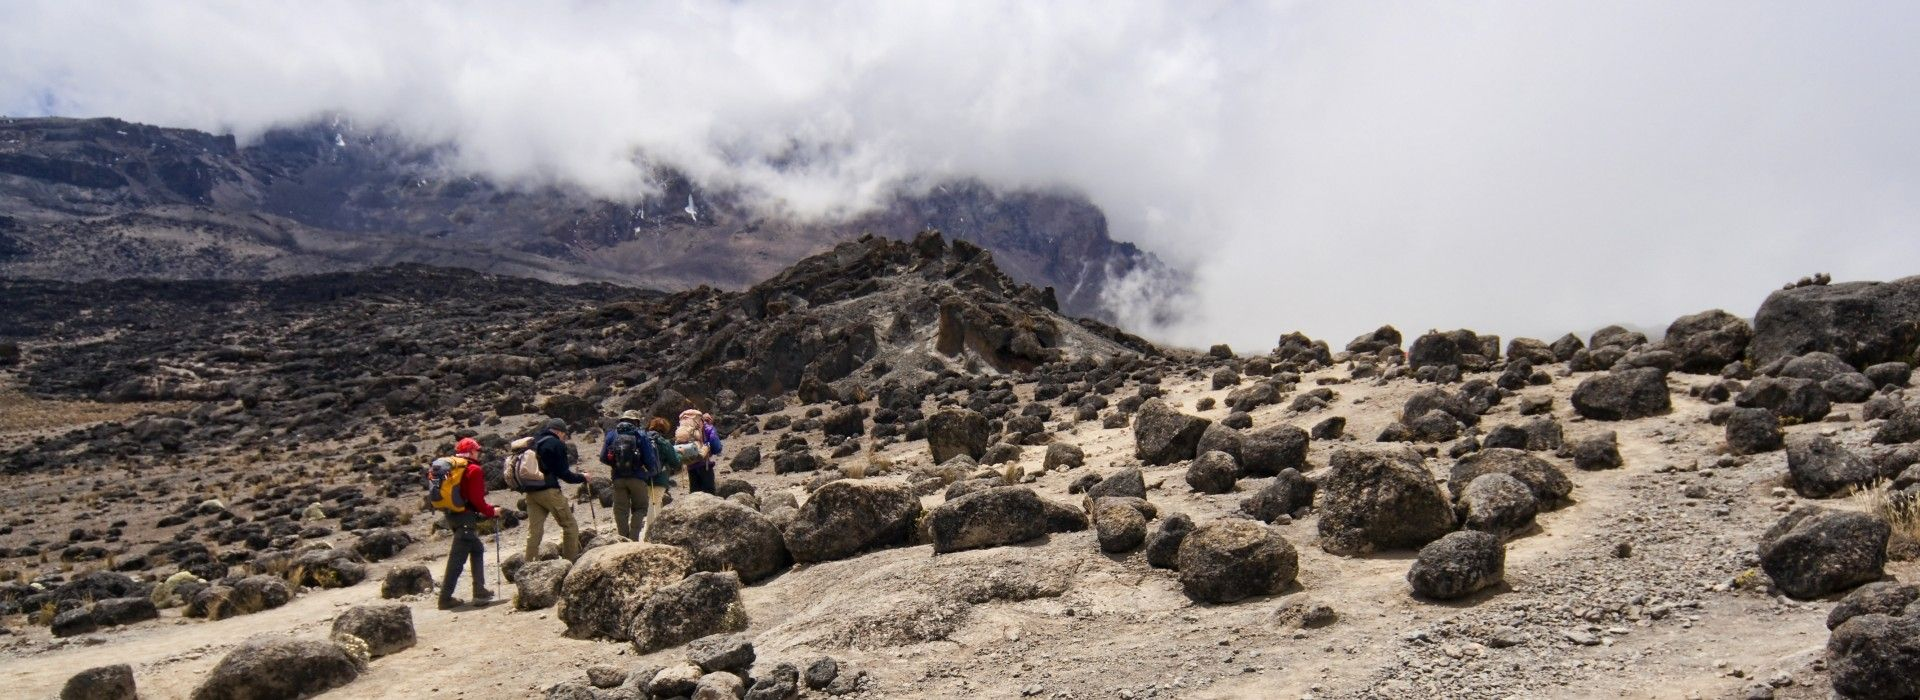 Trekkers climbing Kilimanjaro via the Lemosho route